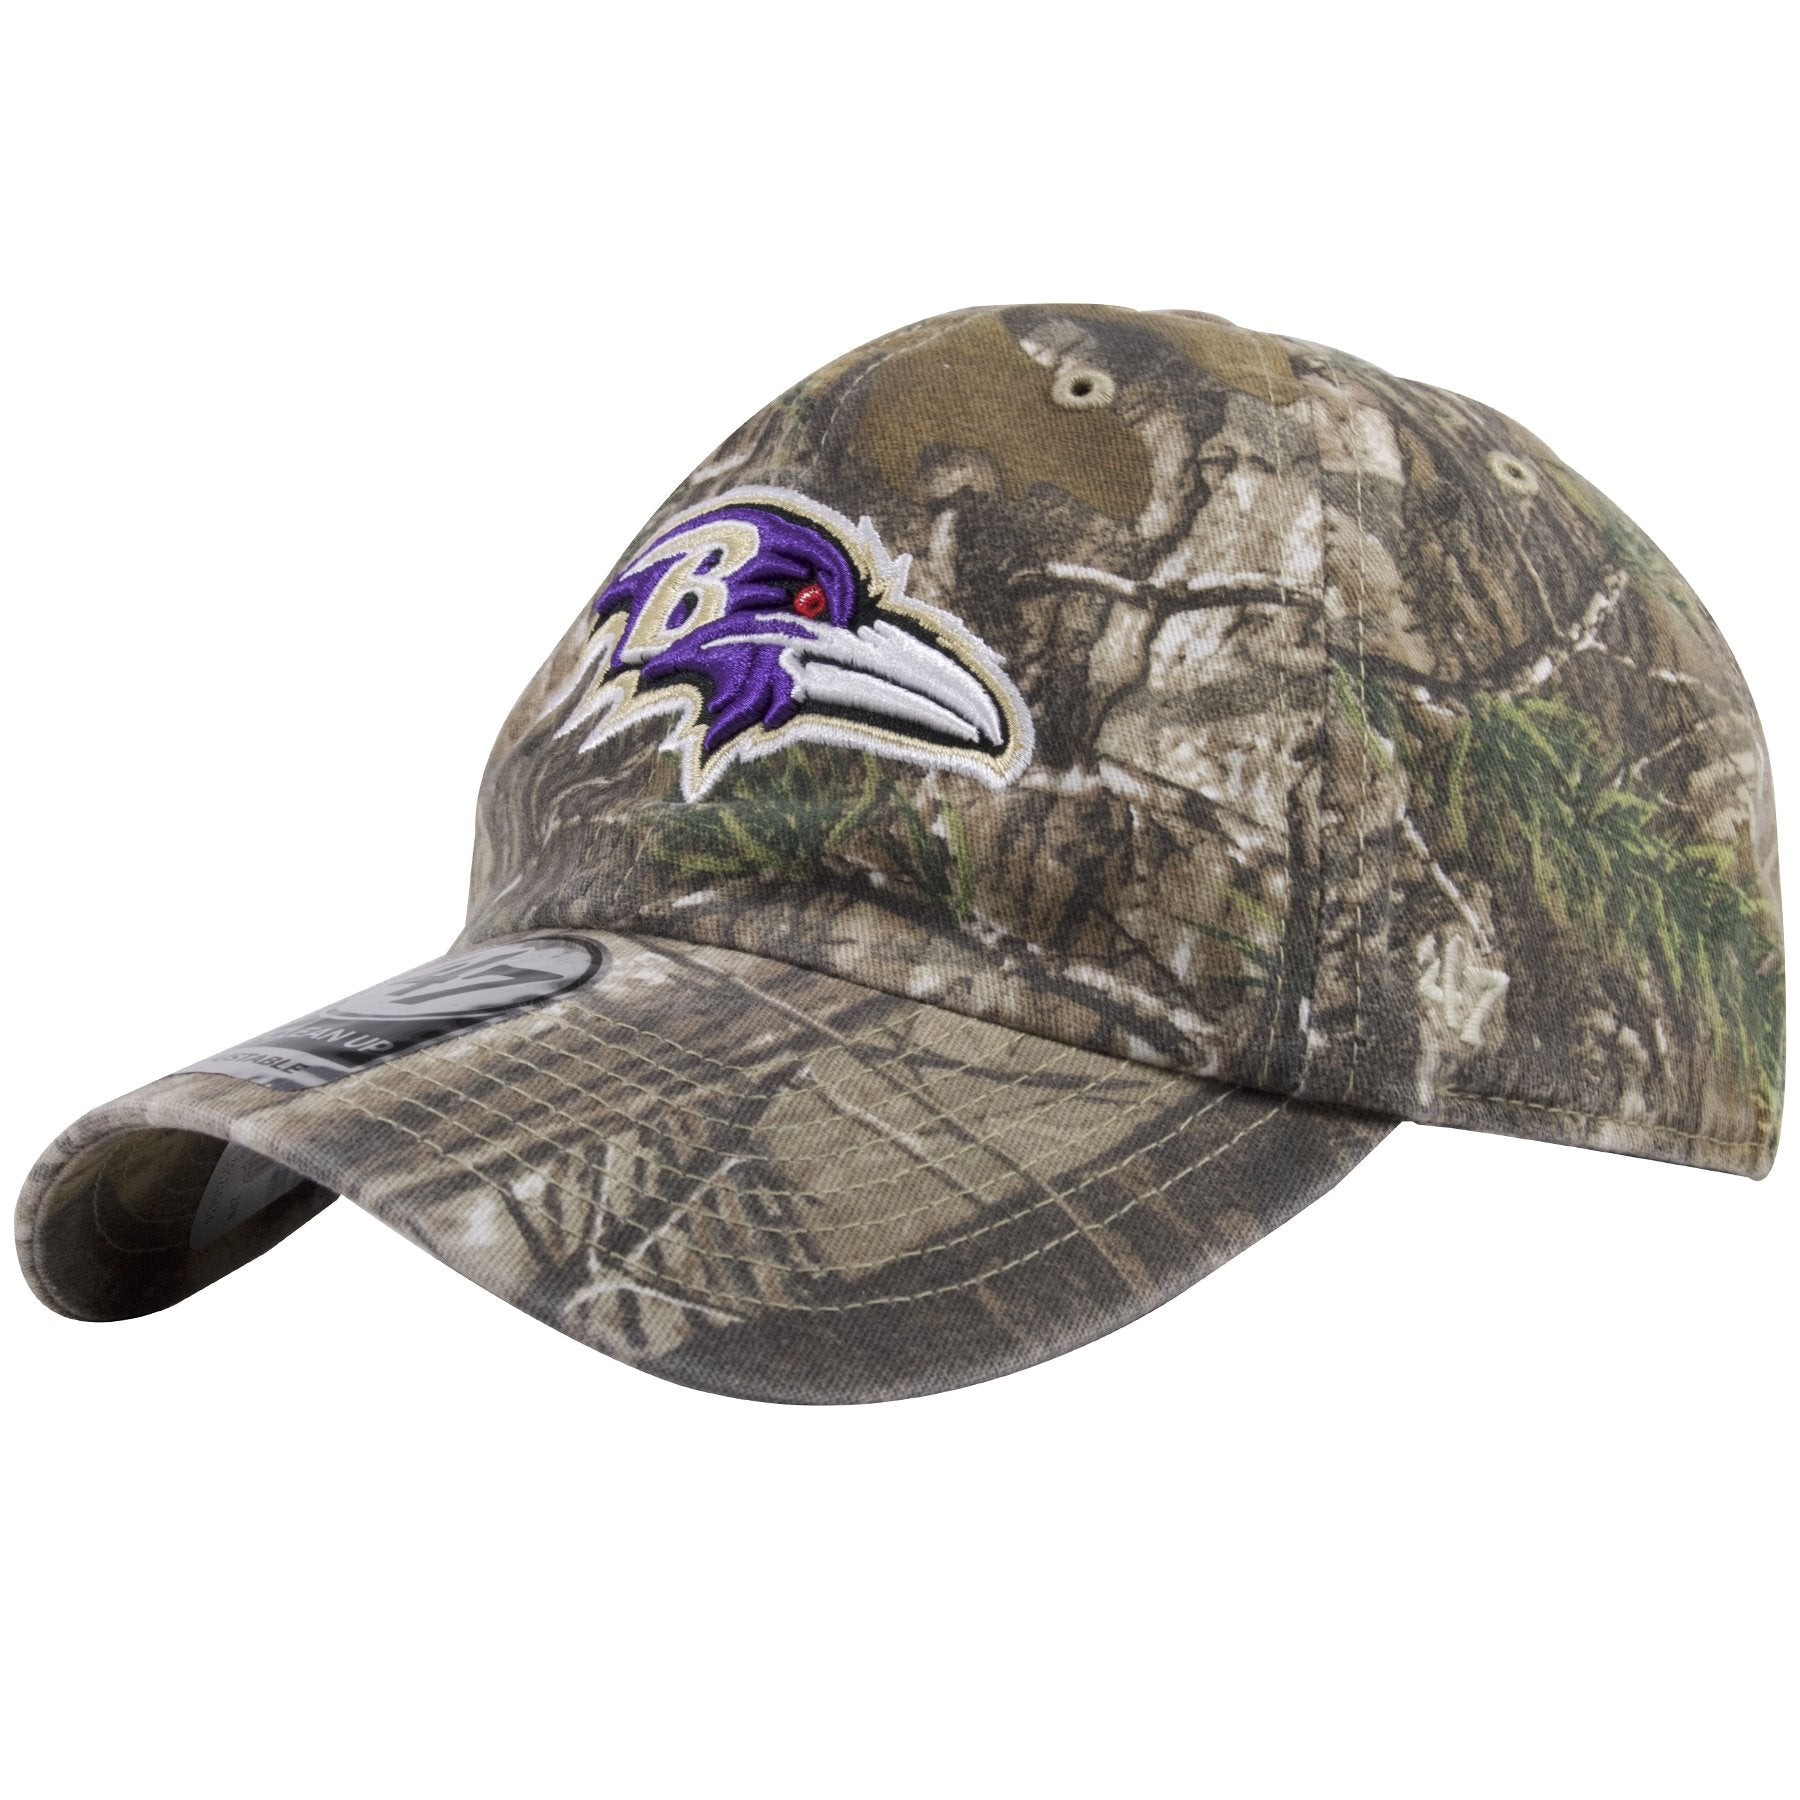 35f5c31d ... The left side of this 47 Brand Baltimore Ravens Clean Up Hat shows the  47 brand ...